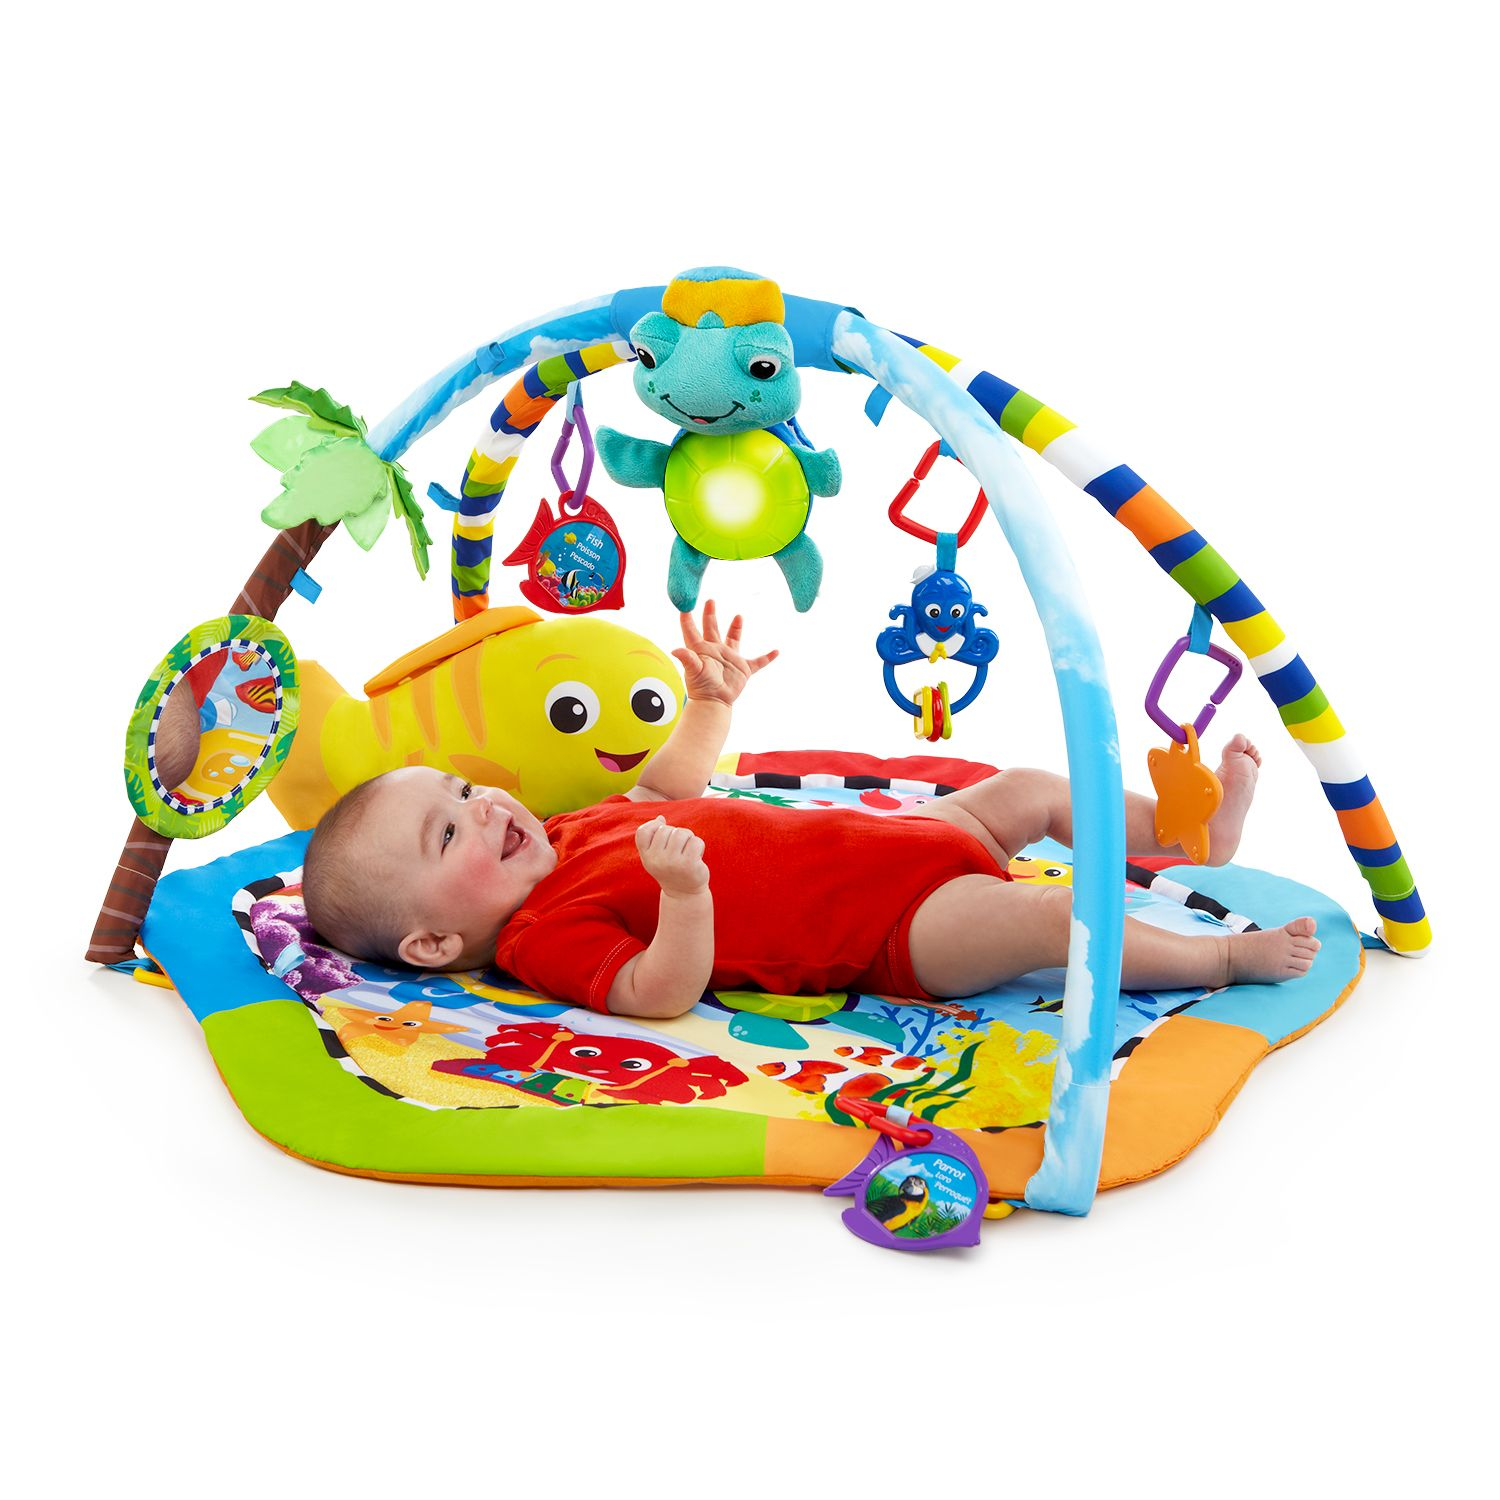 805ec44e7da2 Get 20% off this Baby Einstein Rythm of the Reef Playgym at Target ...